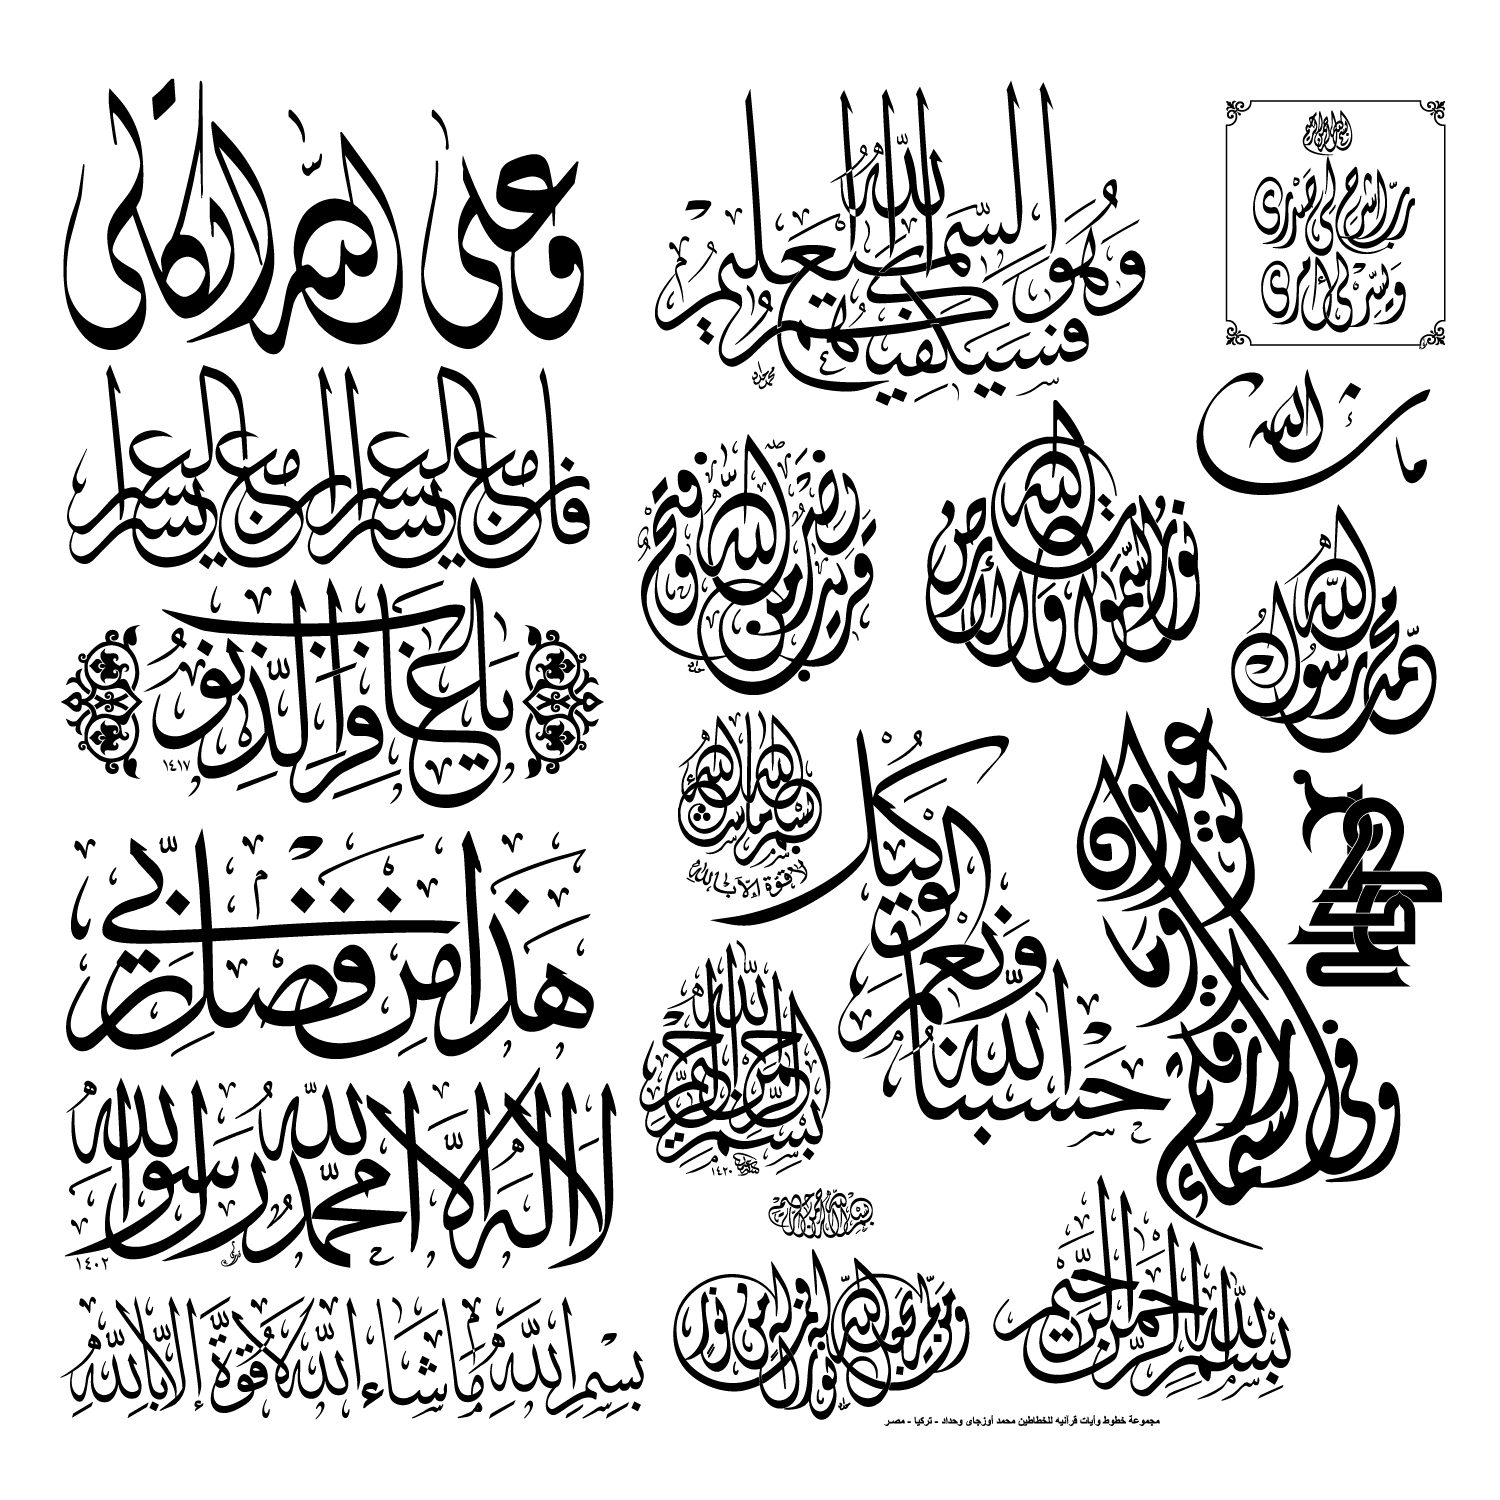 Urdu Calligraphy Font Free Download Islamic Calligraphy By Naderbellal On Deviantart